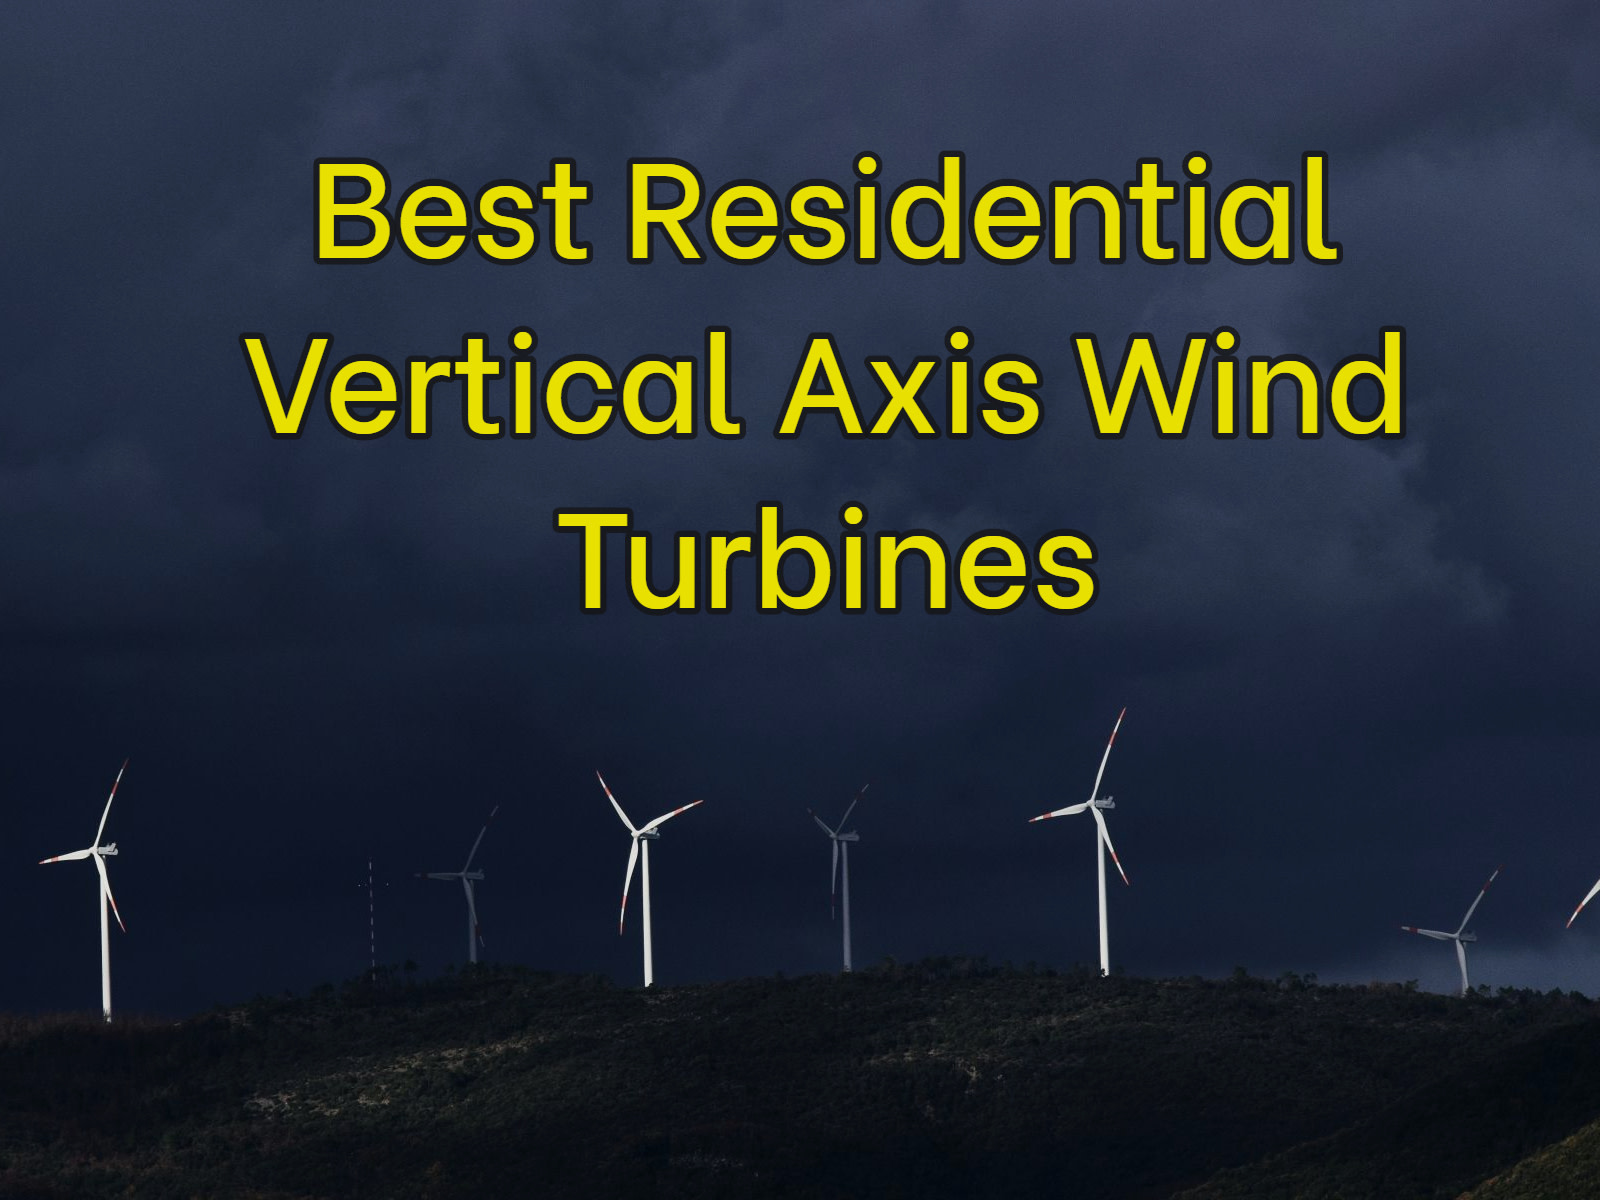 Best Vertical Axis Wind Turbines For Home in 2021